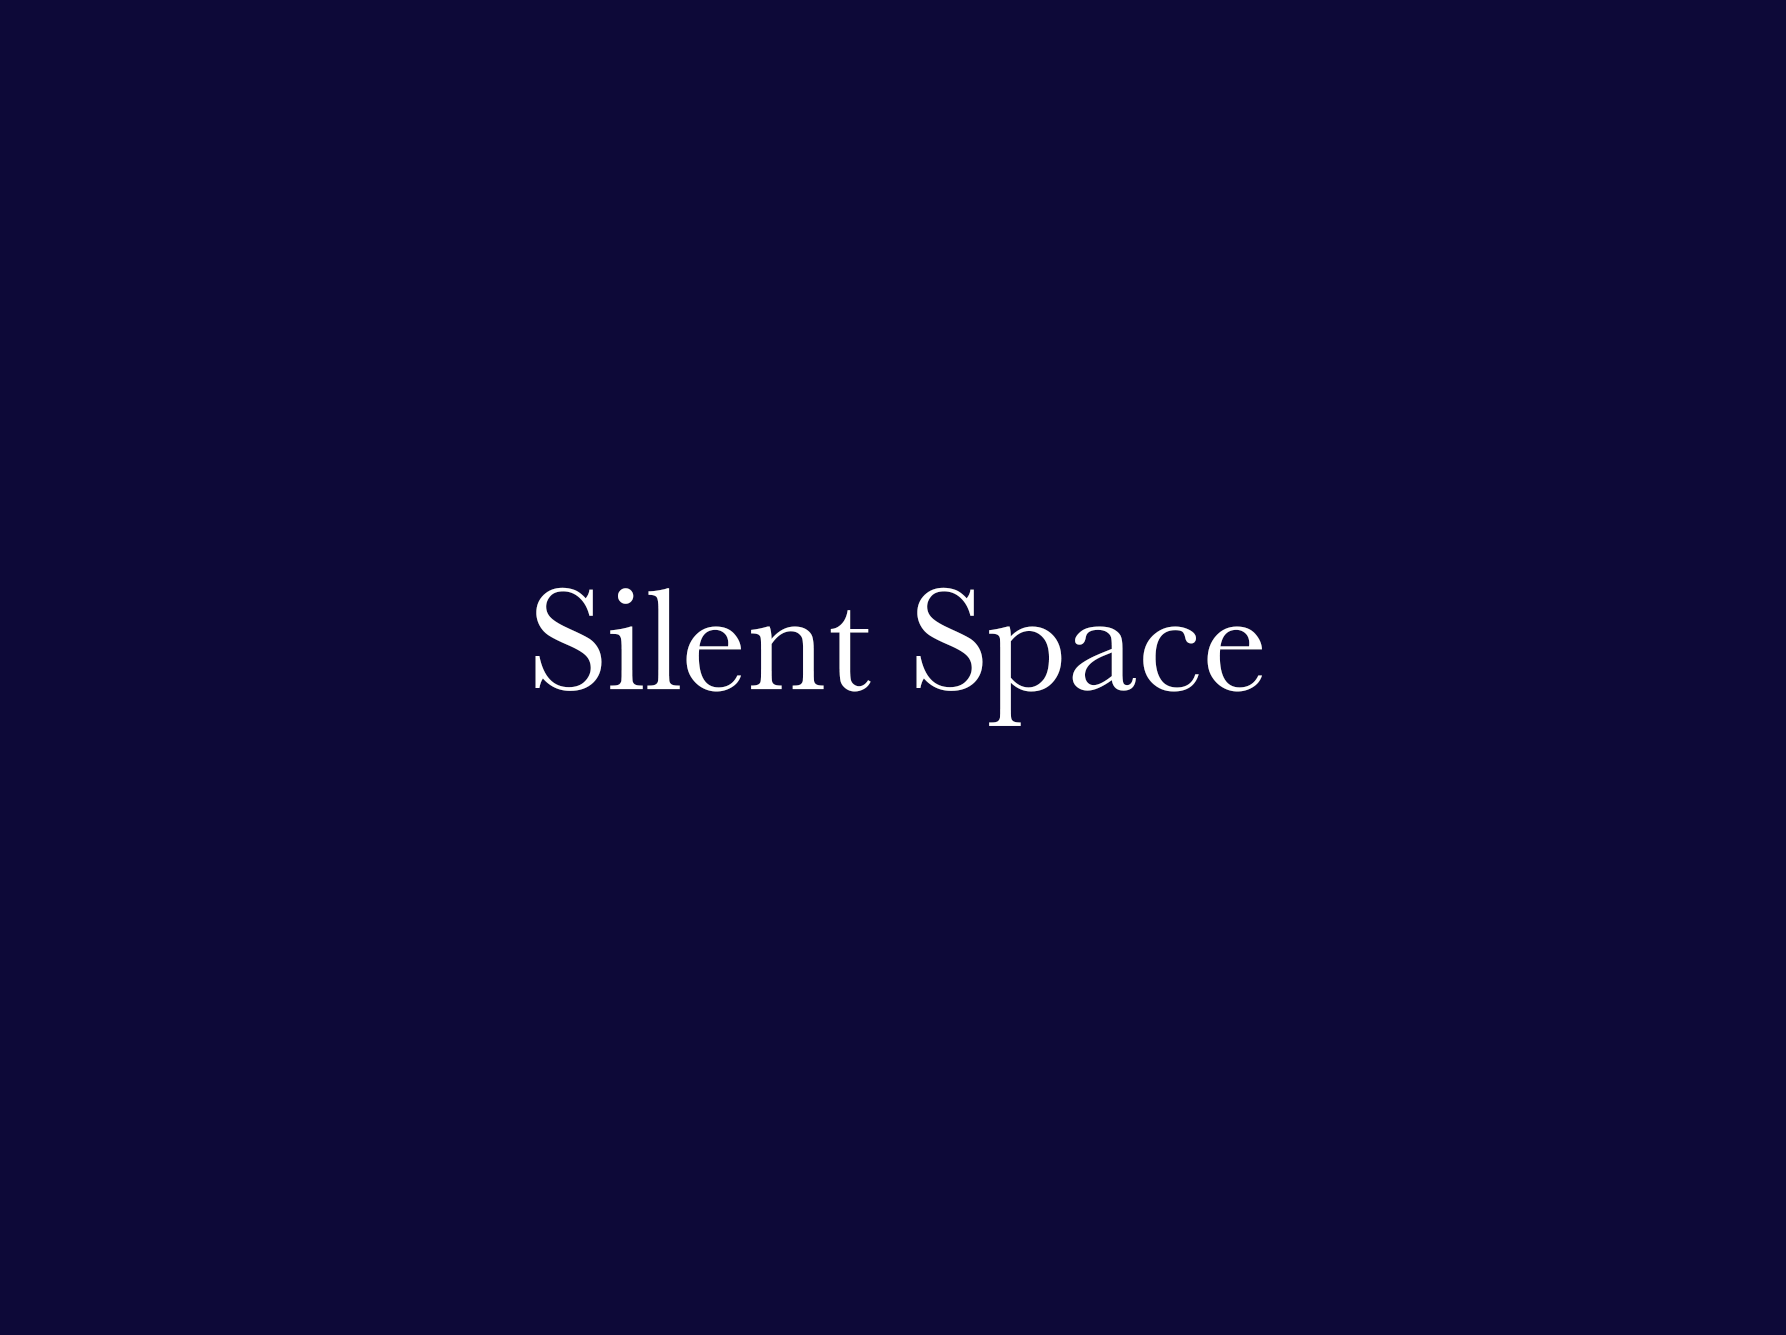 Silent space simple.png